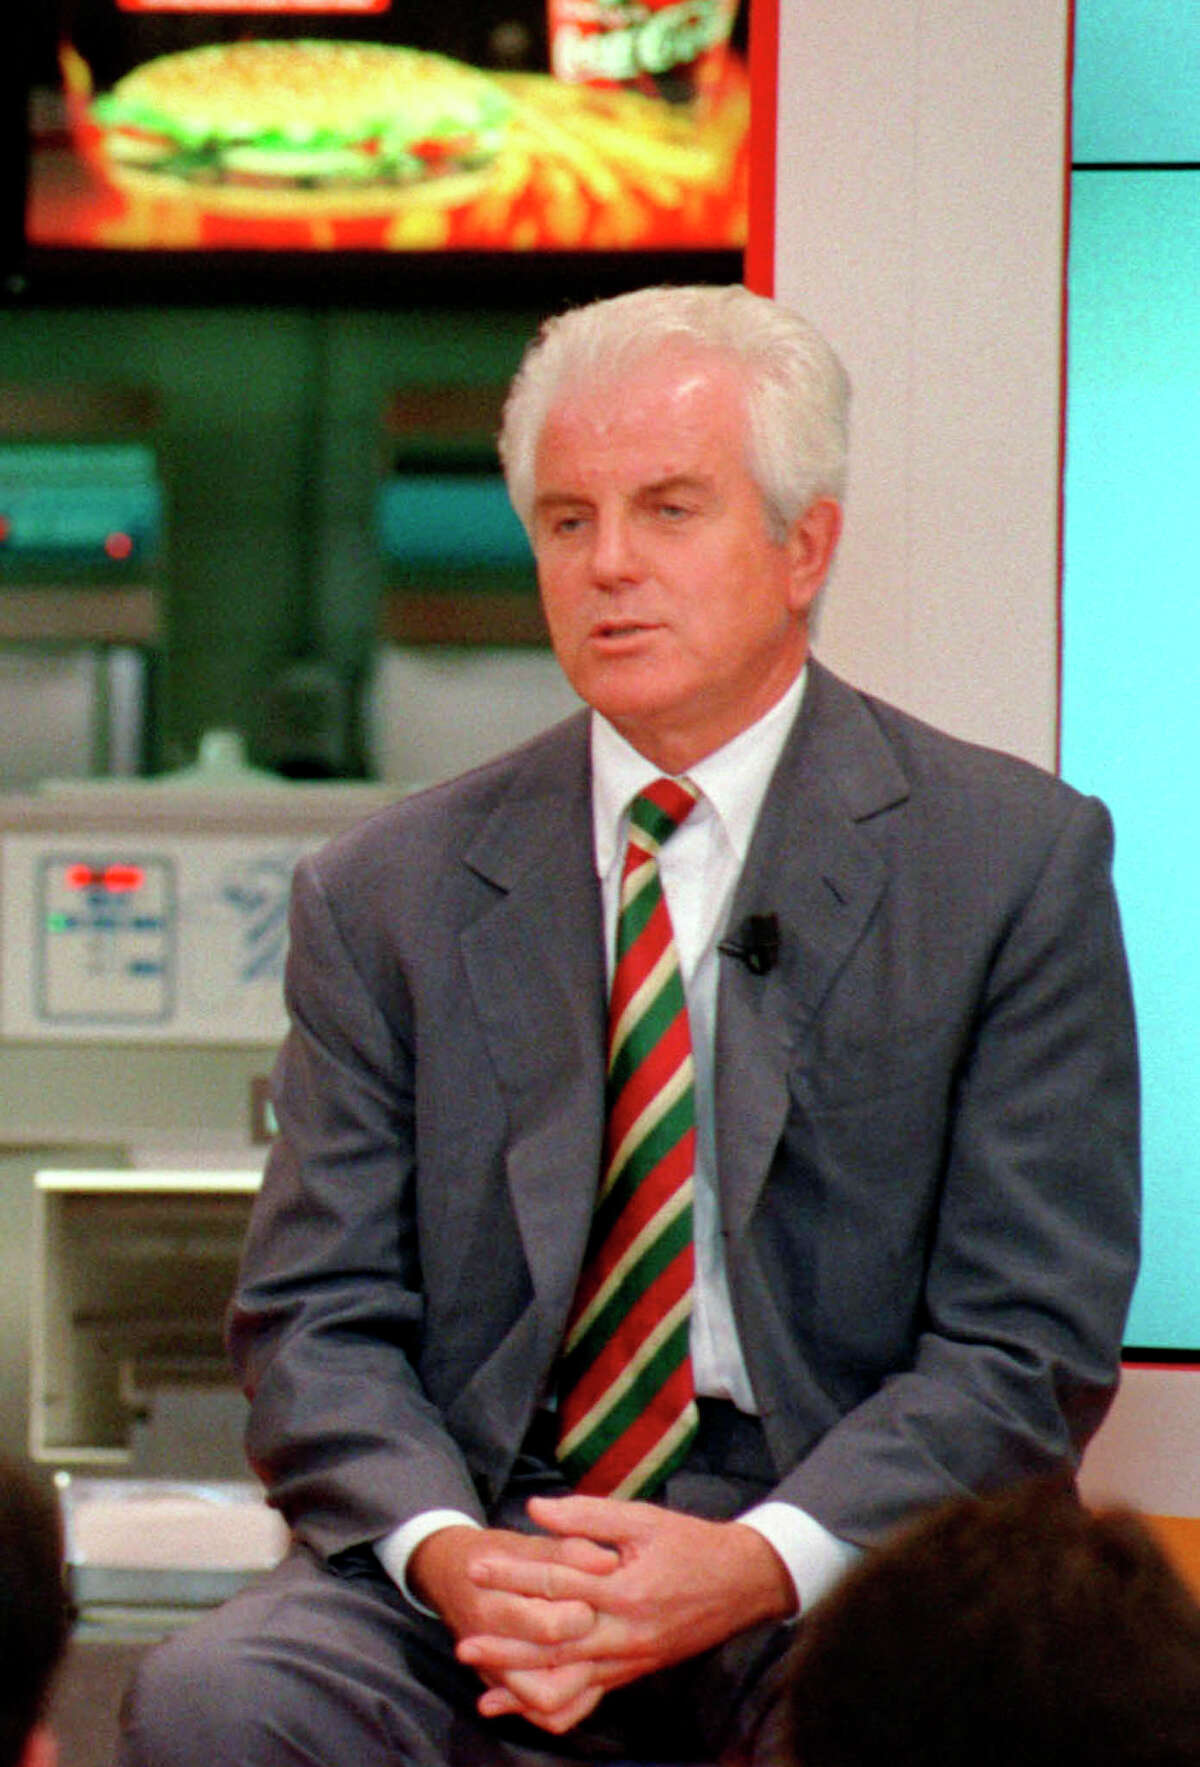 FILE -- OBIT - In this June 7, 1999 file photo, Gilberto Benetton attends the inauguration of the first Italian Burger King store in Milan, Italy. Gilberto Benetton, co-founder of the Benetton Group, died Monday, Oct. 22, 2018. (AP Photo/Maki Galimberti, file)